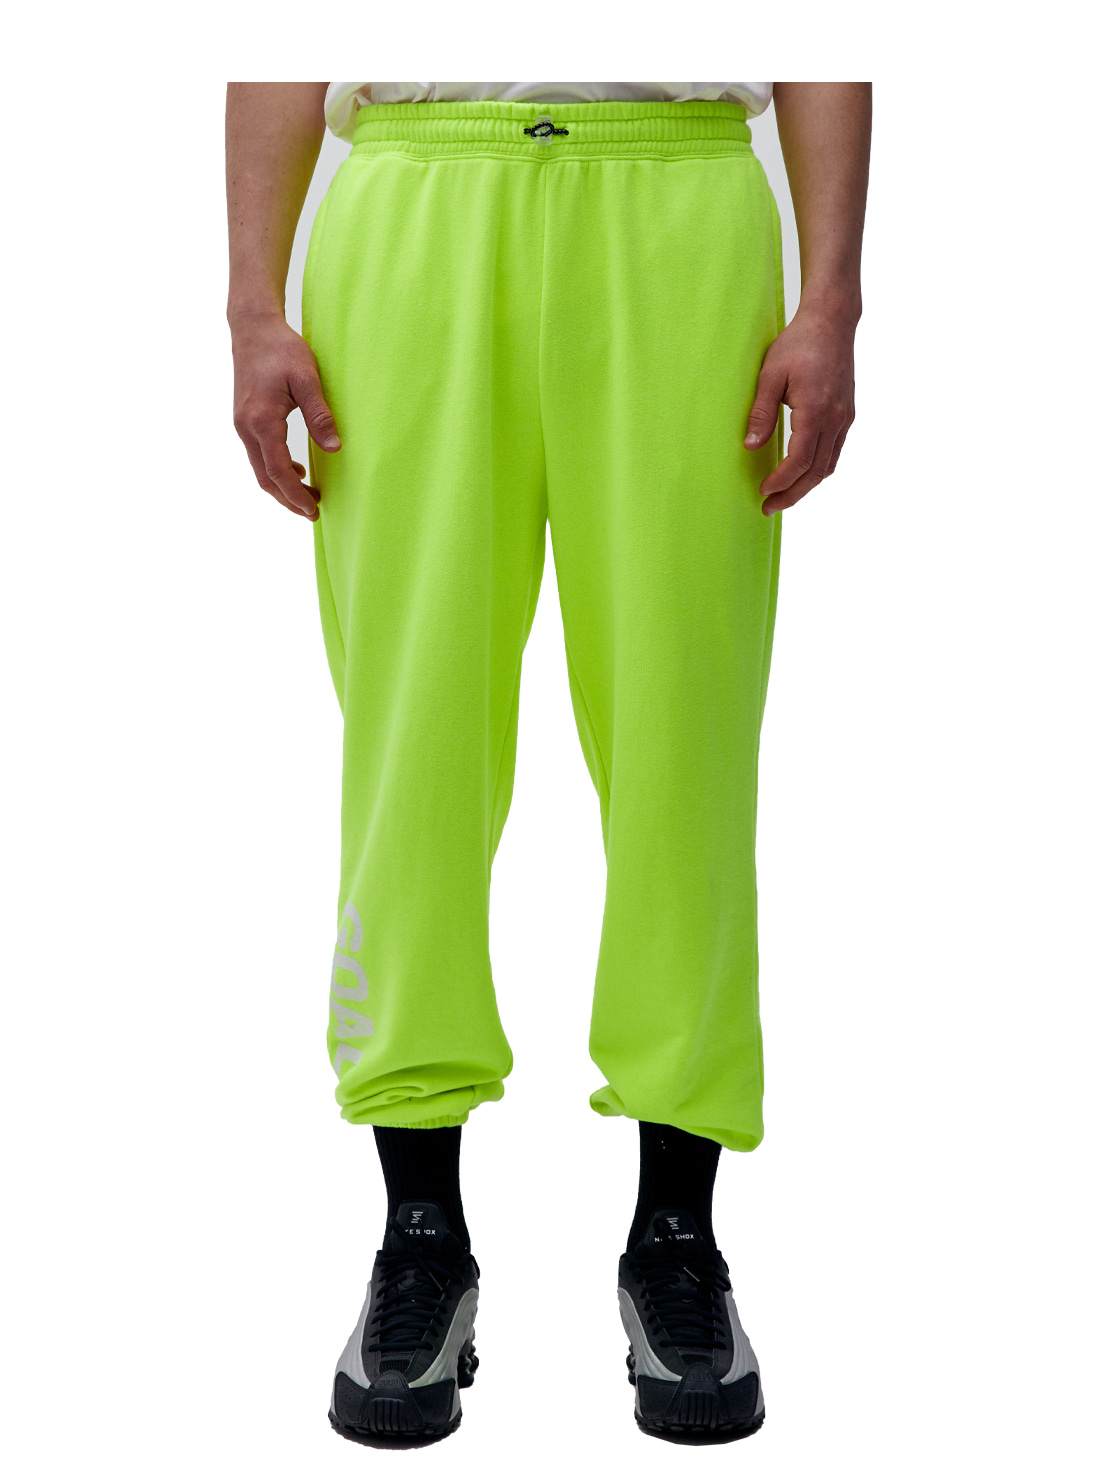 GOALSTUDIO FLOCKING KNIT JOGGER PANTS - LIME YELLOW